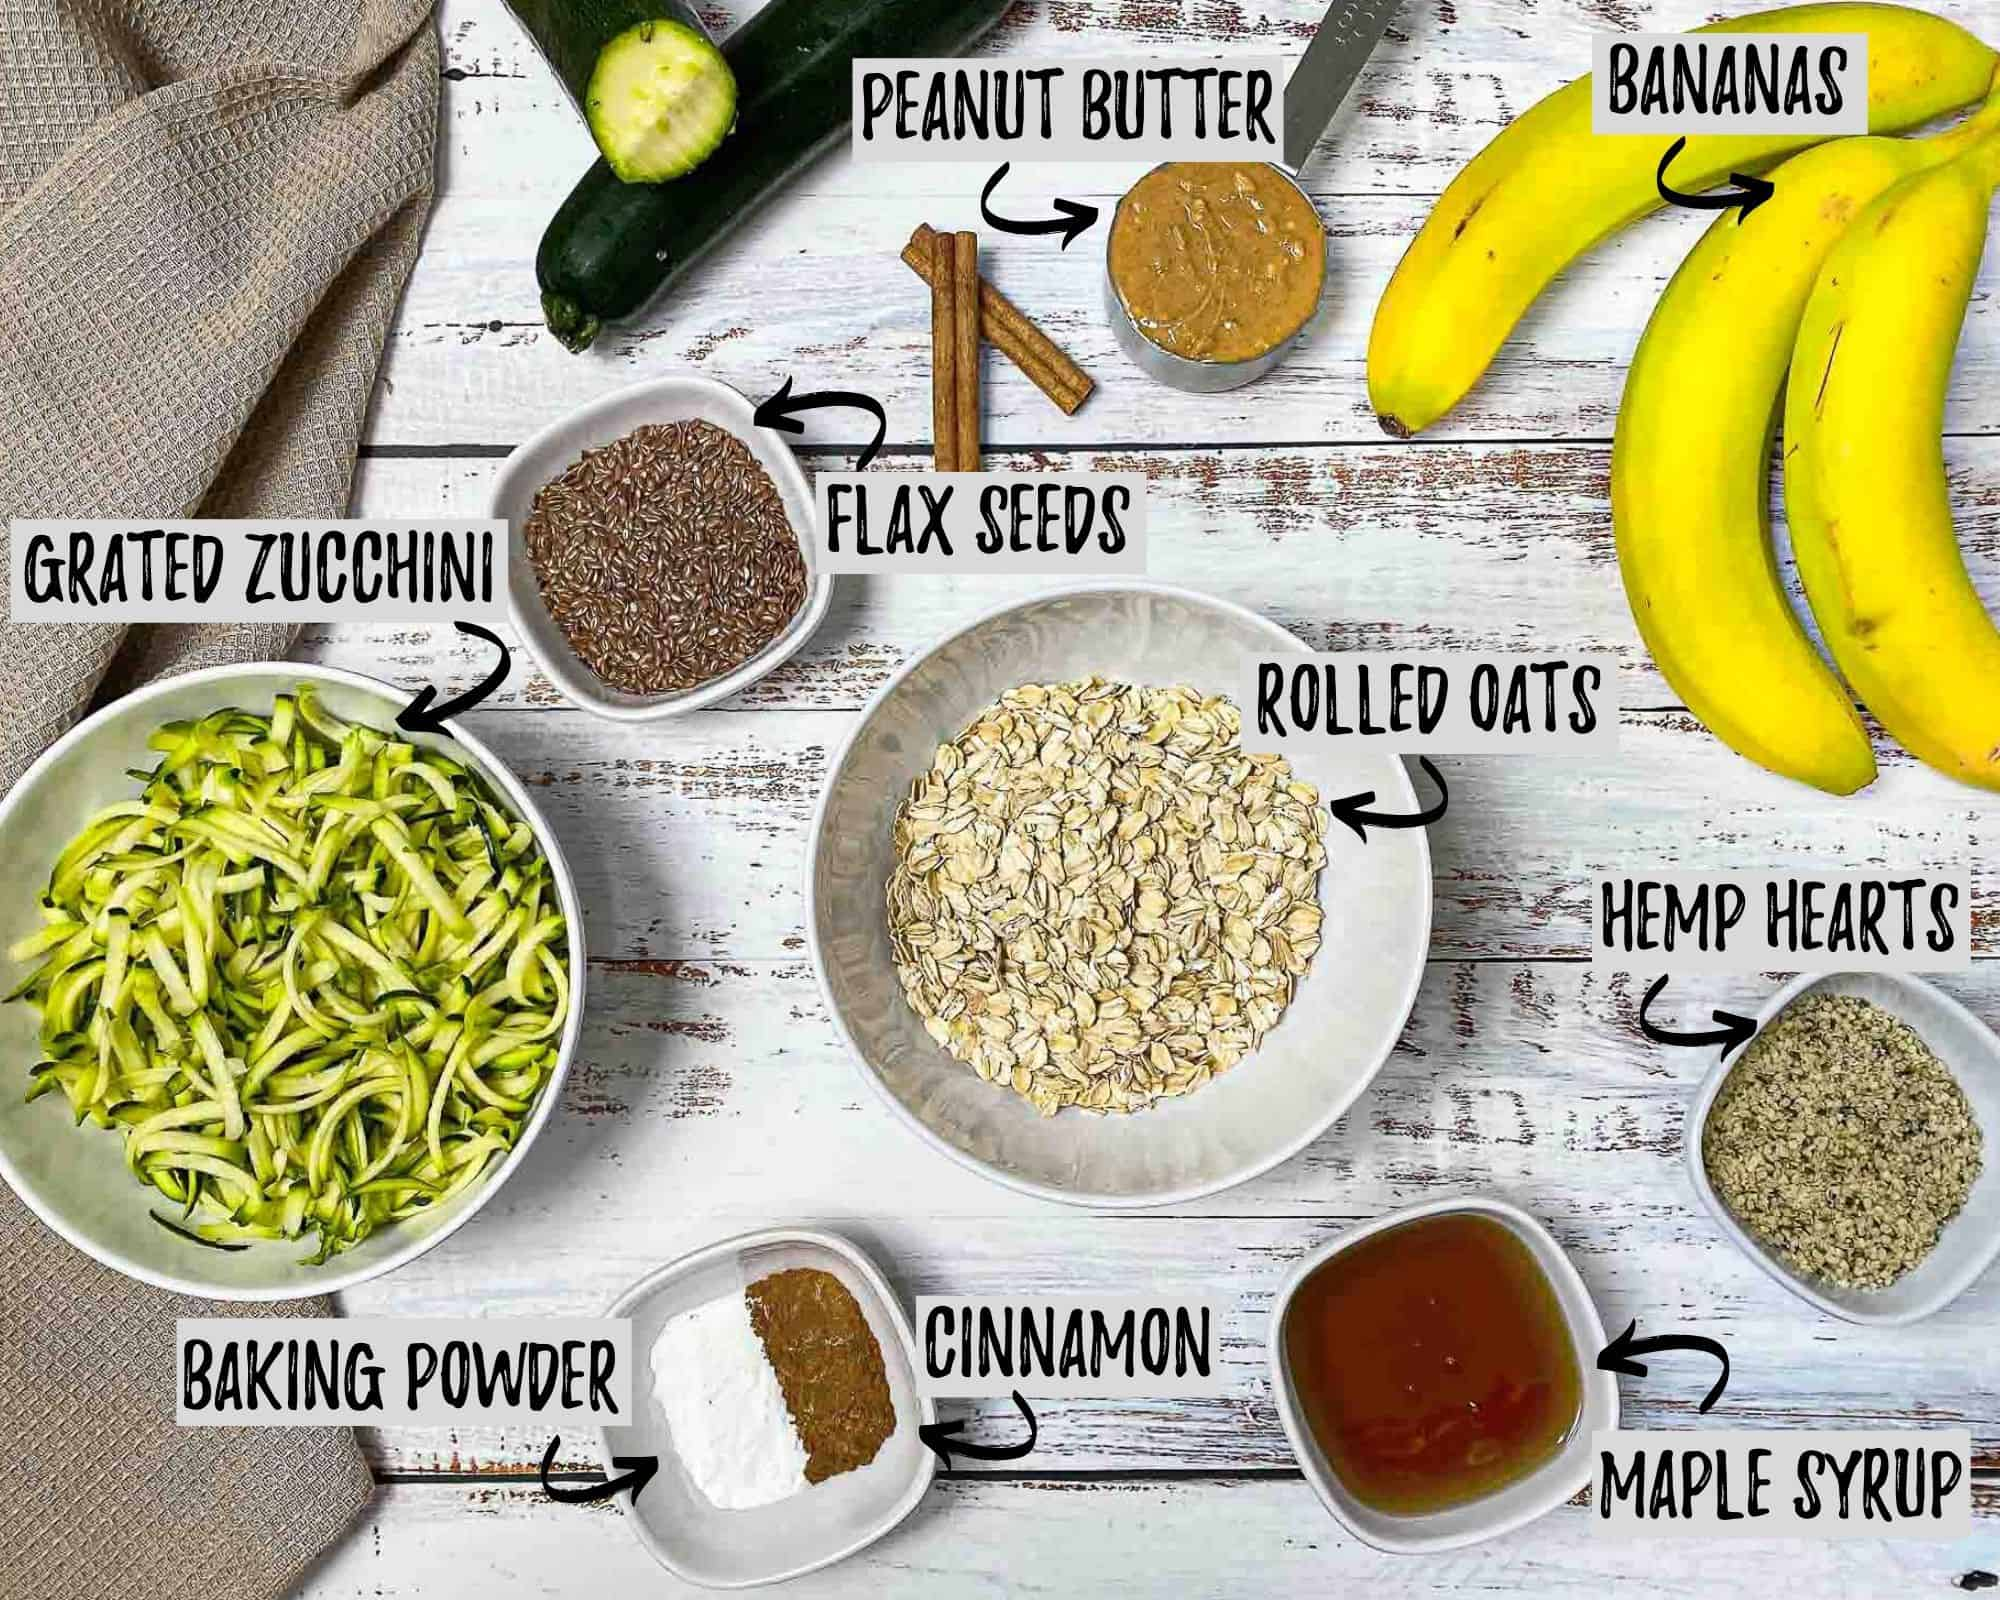 bowl of oats, grated zucchini, maple syrup, cinnamon, baking powder, peanut butter, flax seeds, and bananas